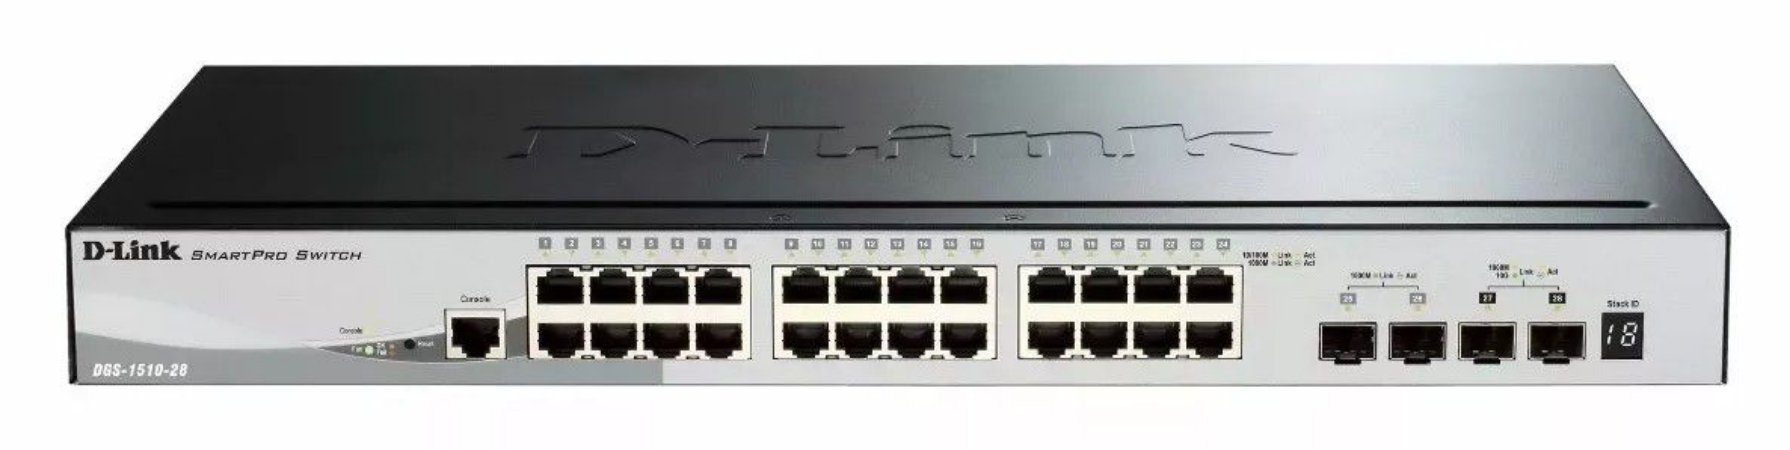 Switch D-link Dgs-1510 24 10/100/1000 Poe+ 2-sfp/2-sfp-68416